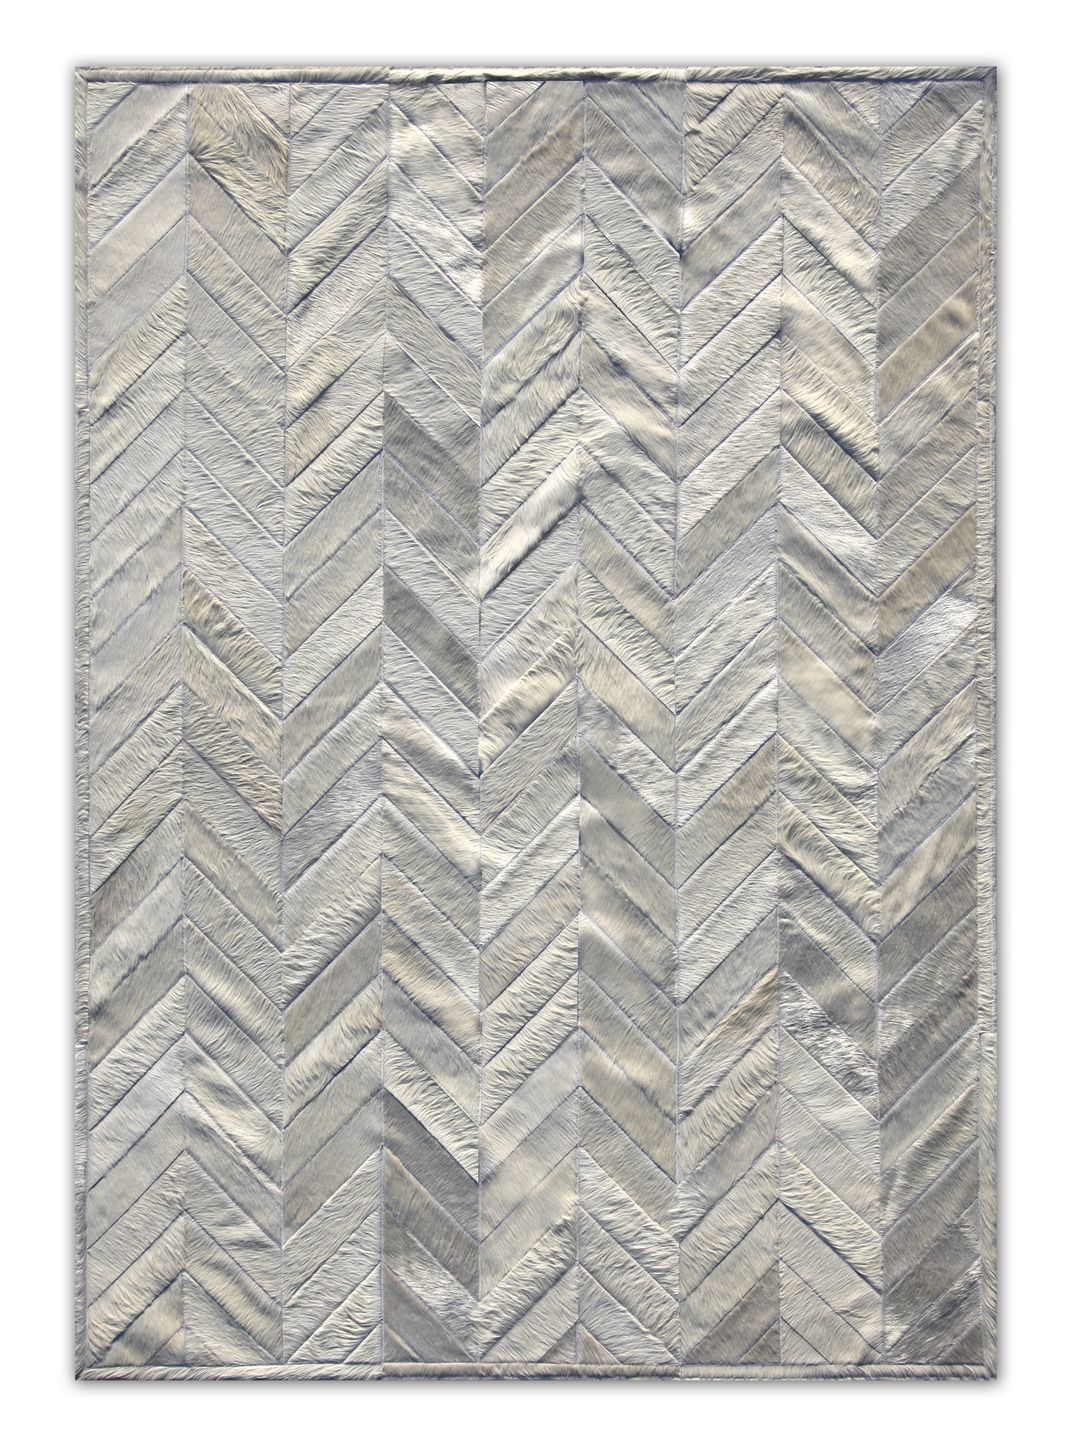 Patchwork Cowhide Rug Seriously Fabulous Patchwork Cowhide Patchwork Cowhide Rug Cow Hide Rug